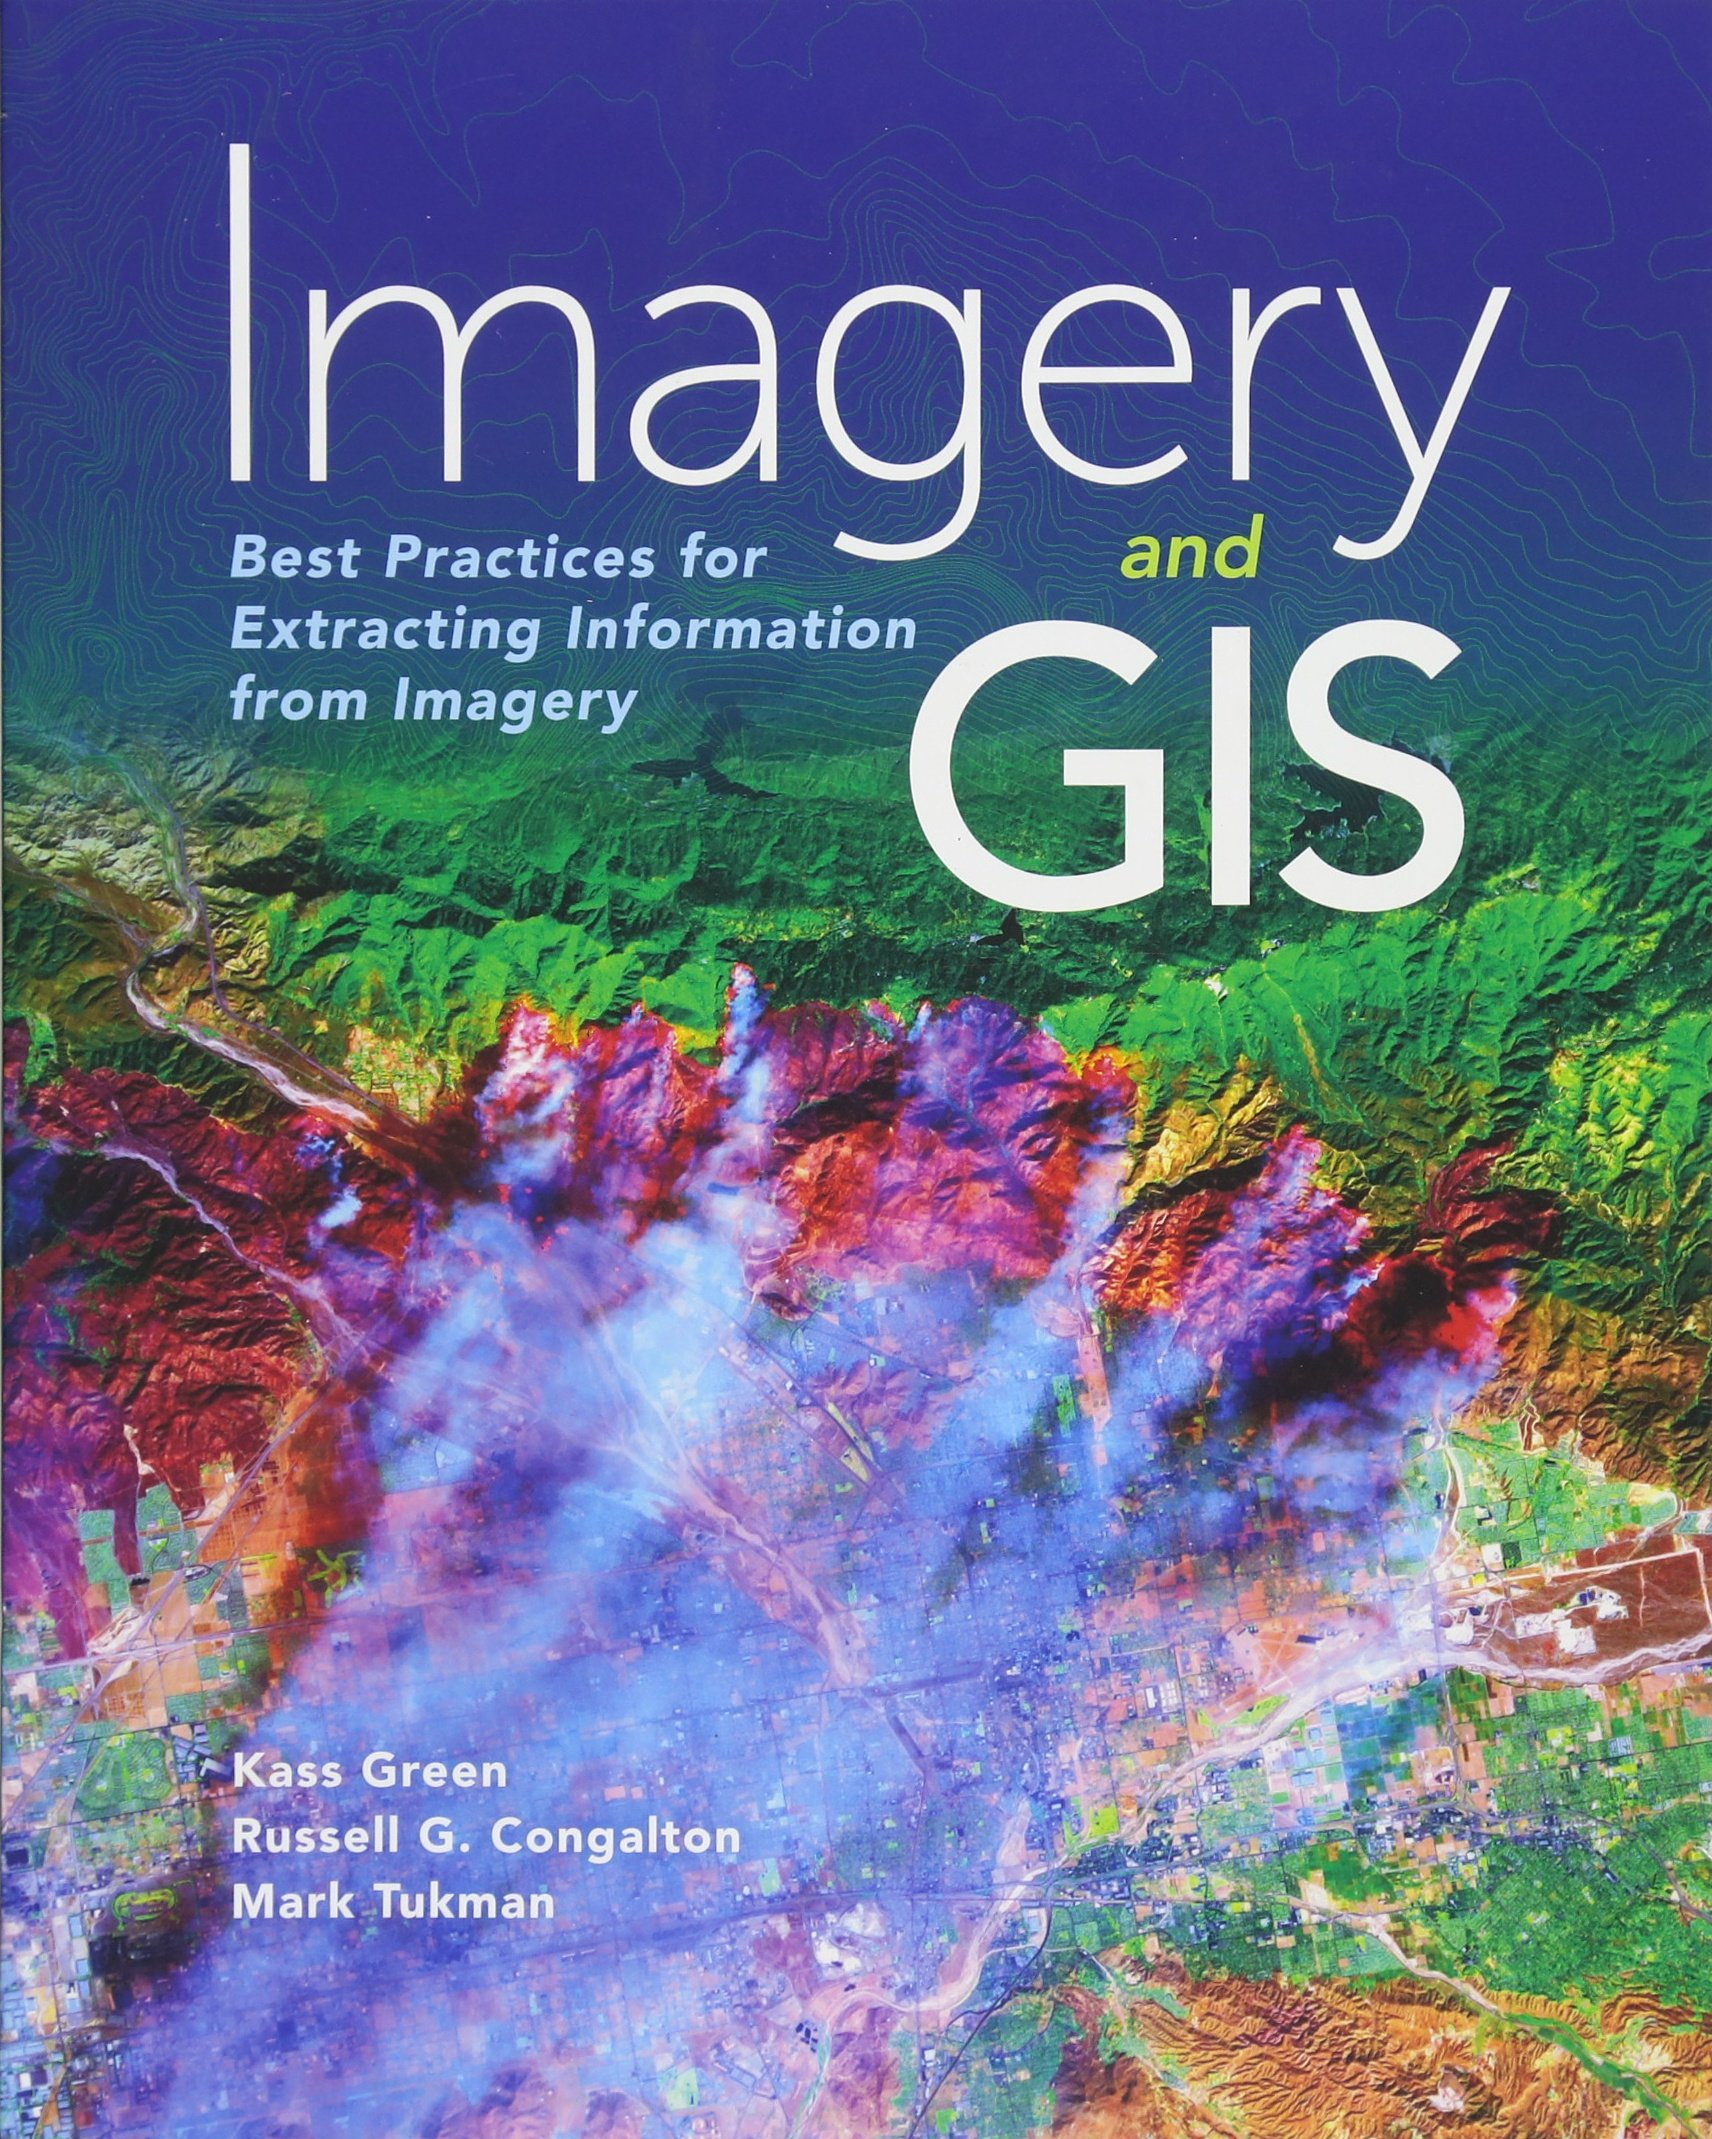 Imagery and GIS: Best Practices for Extracting Information from Imagery